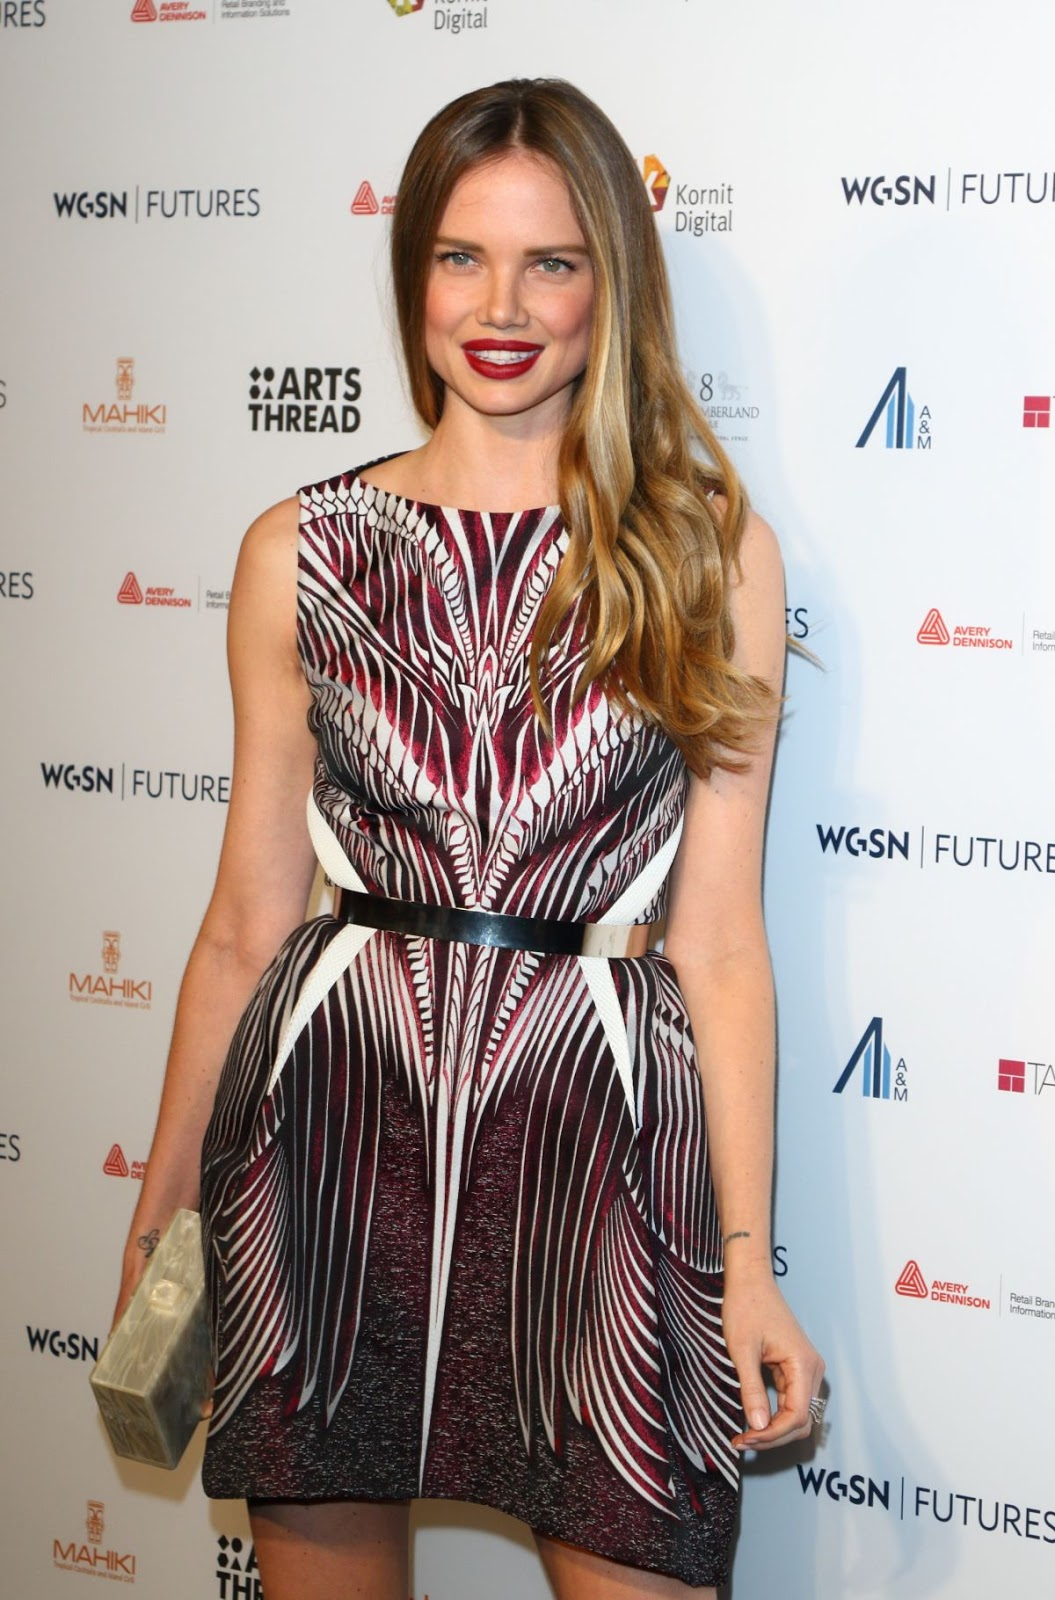 Alicia Rountree at WGSN Futures Awards 2016 in London